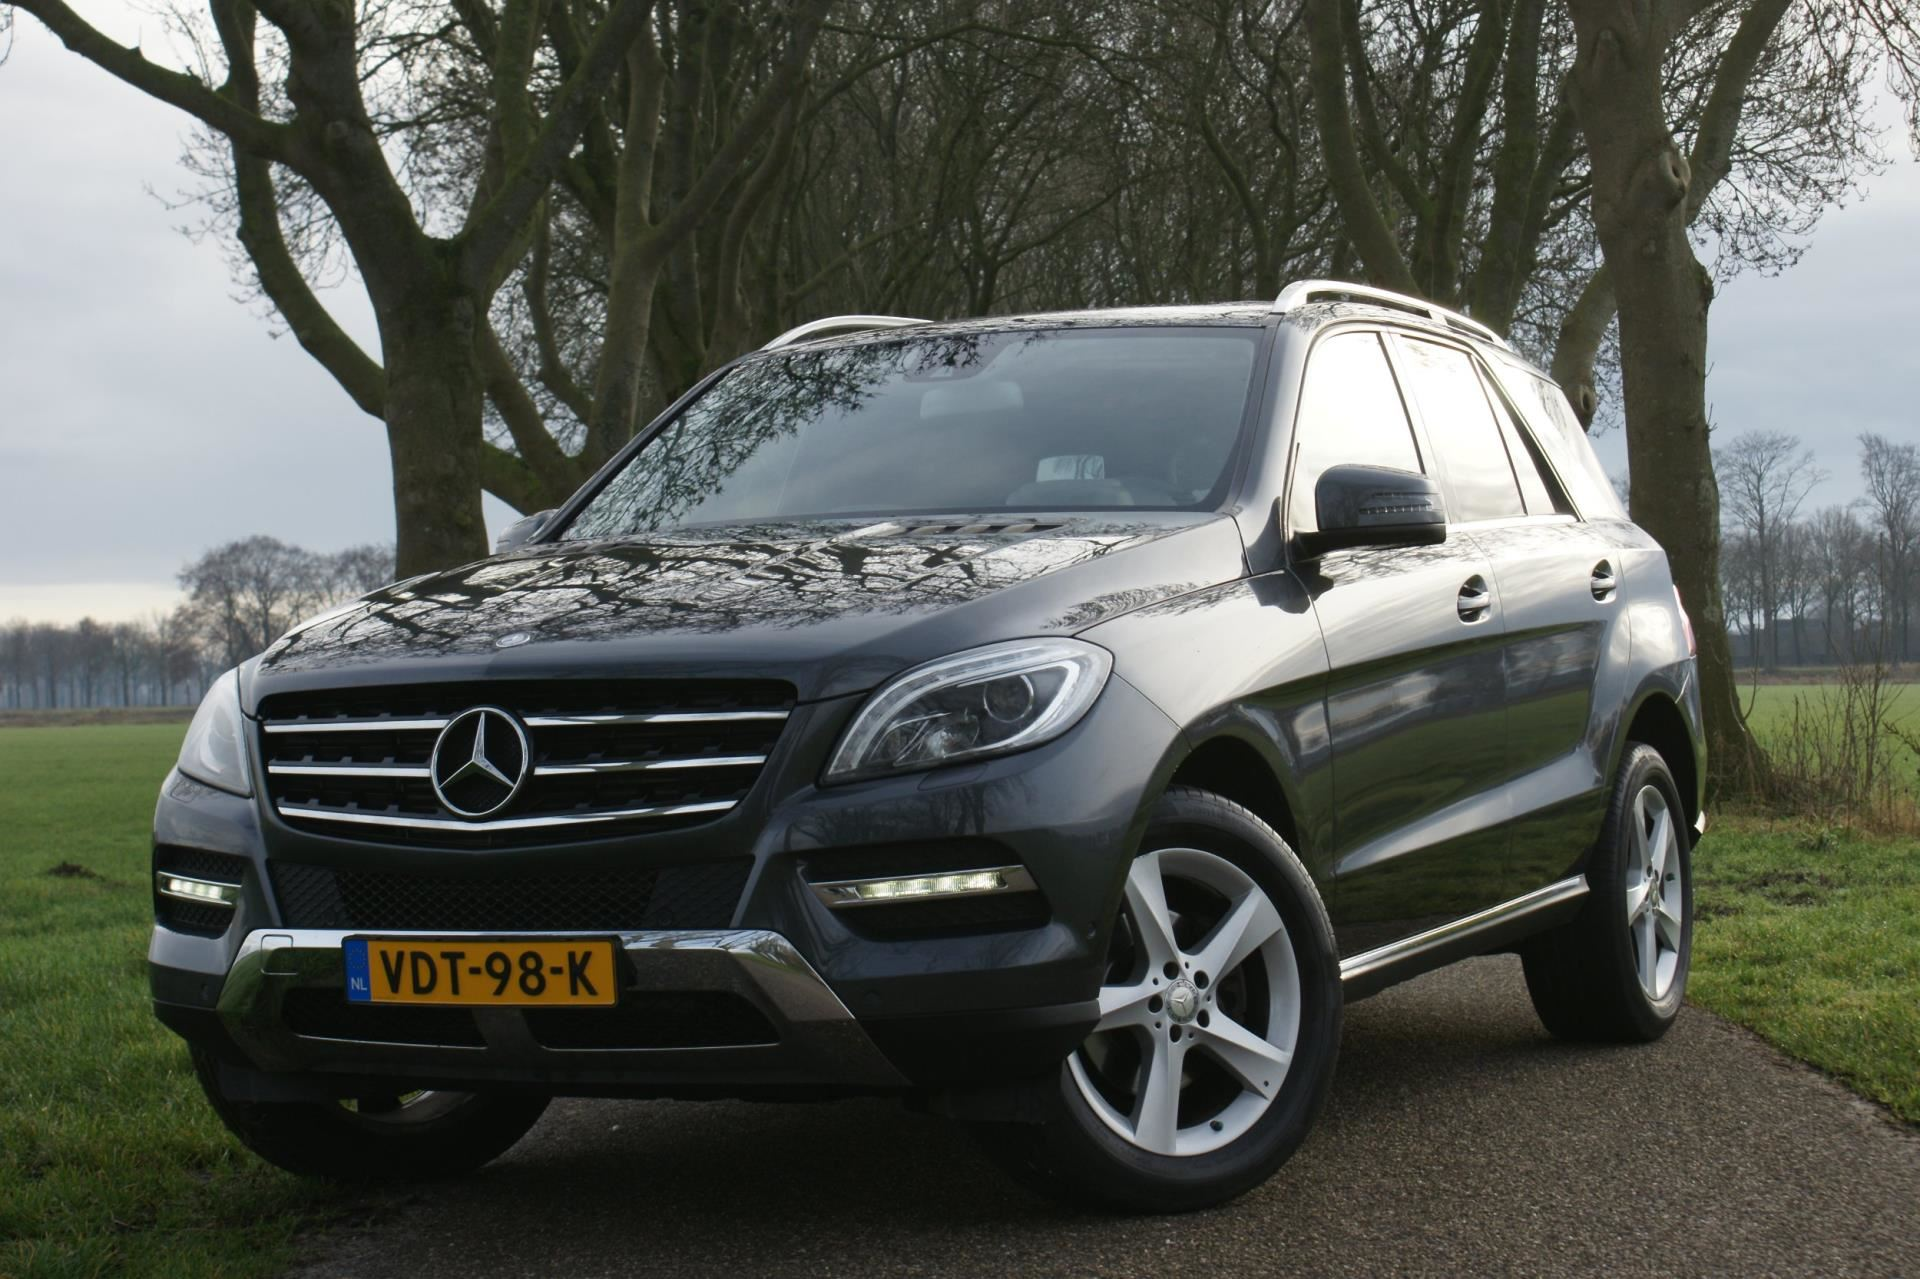 Mercedes-Benz ML 350 BLUETEC 4MATIC occasion - Autobedrijf Tromp v.o.f.